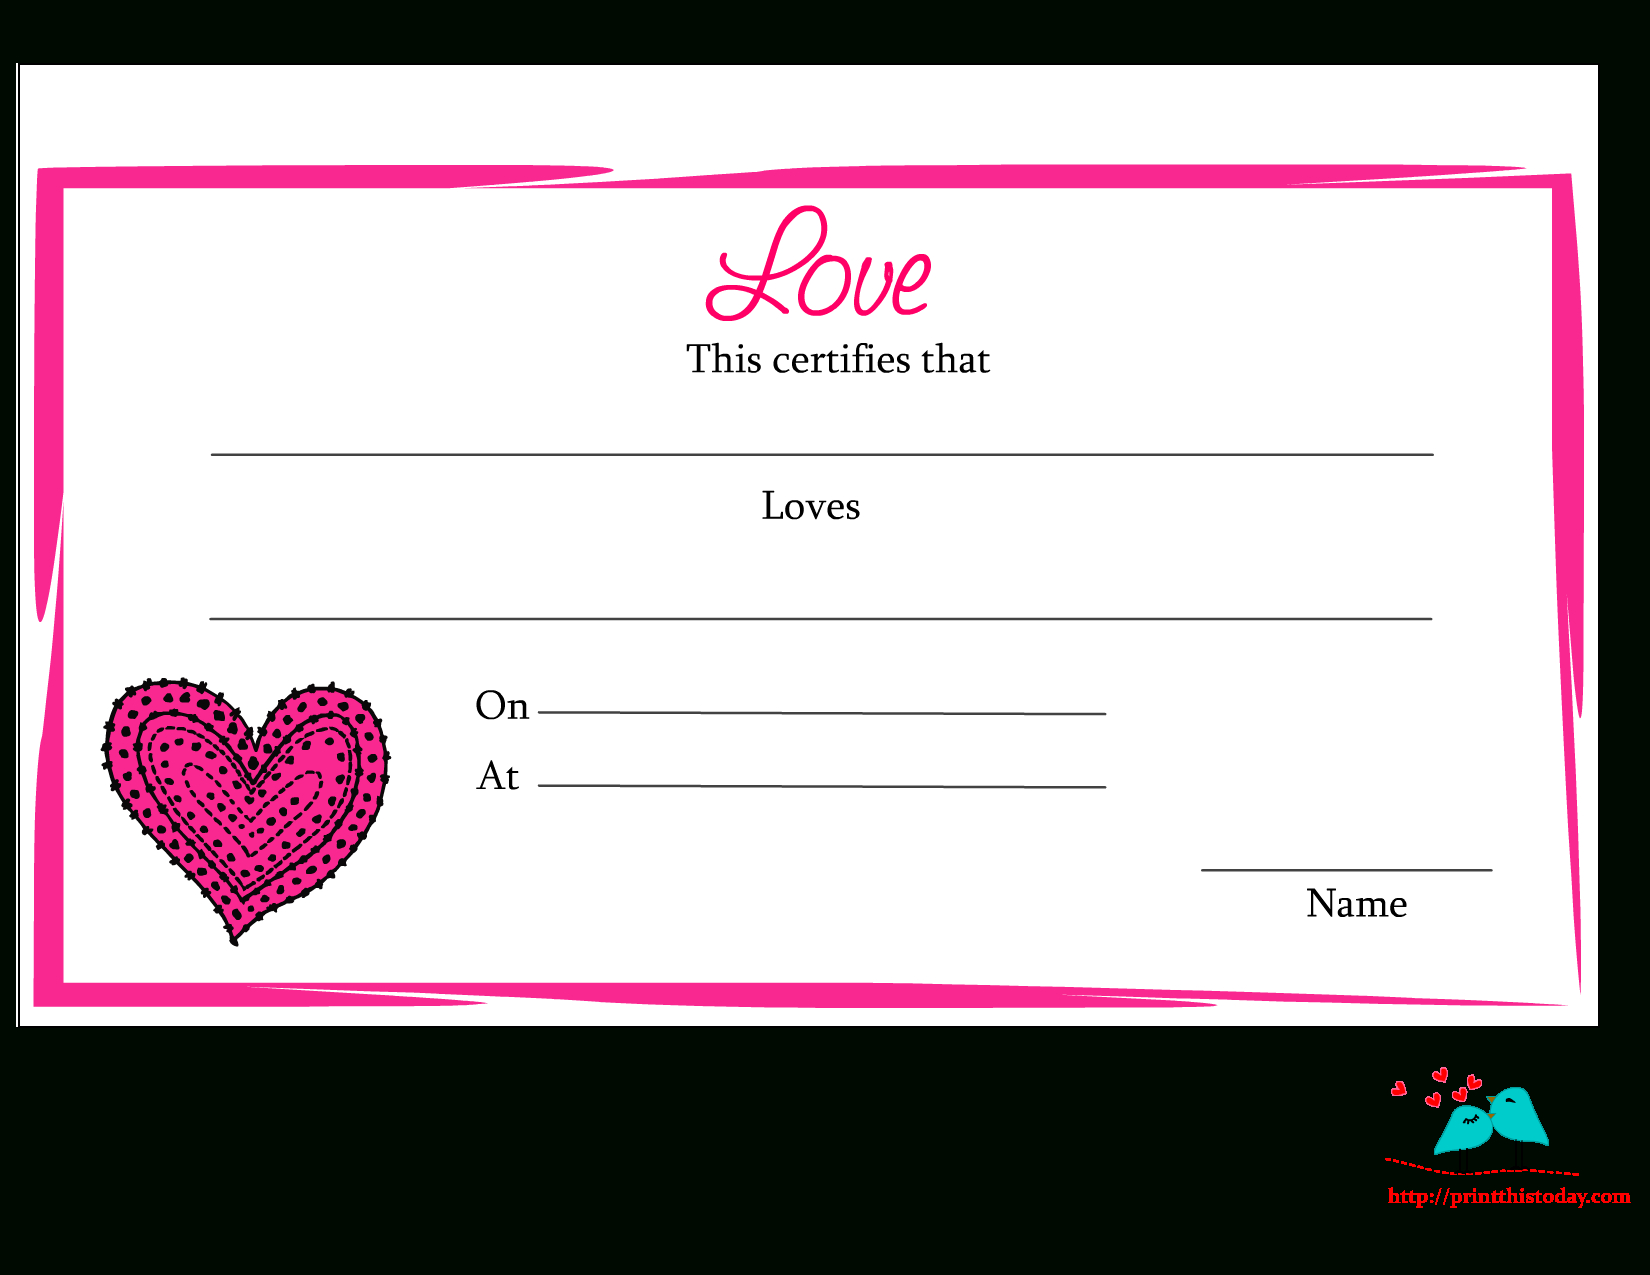 Free Printable Love Certificate | For The Holidays | Free, Love Is - Free Printable Love Certificates For Him